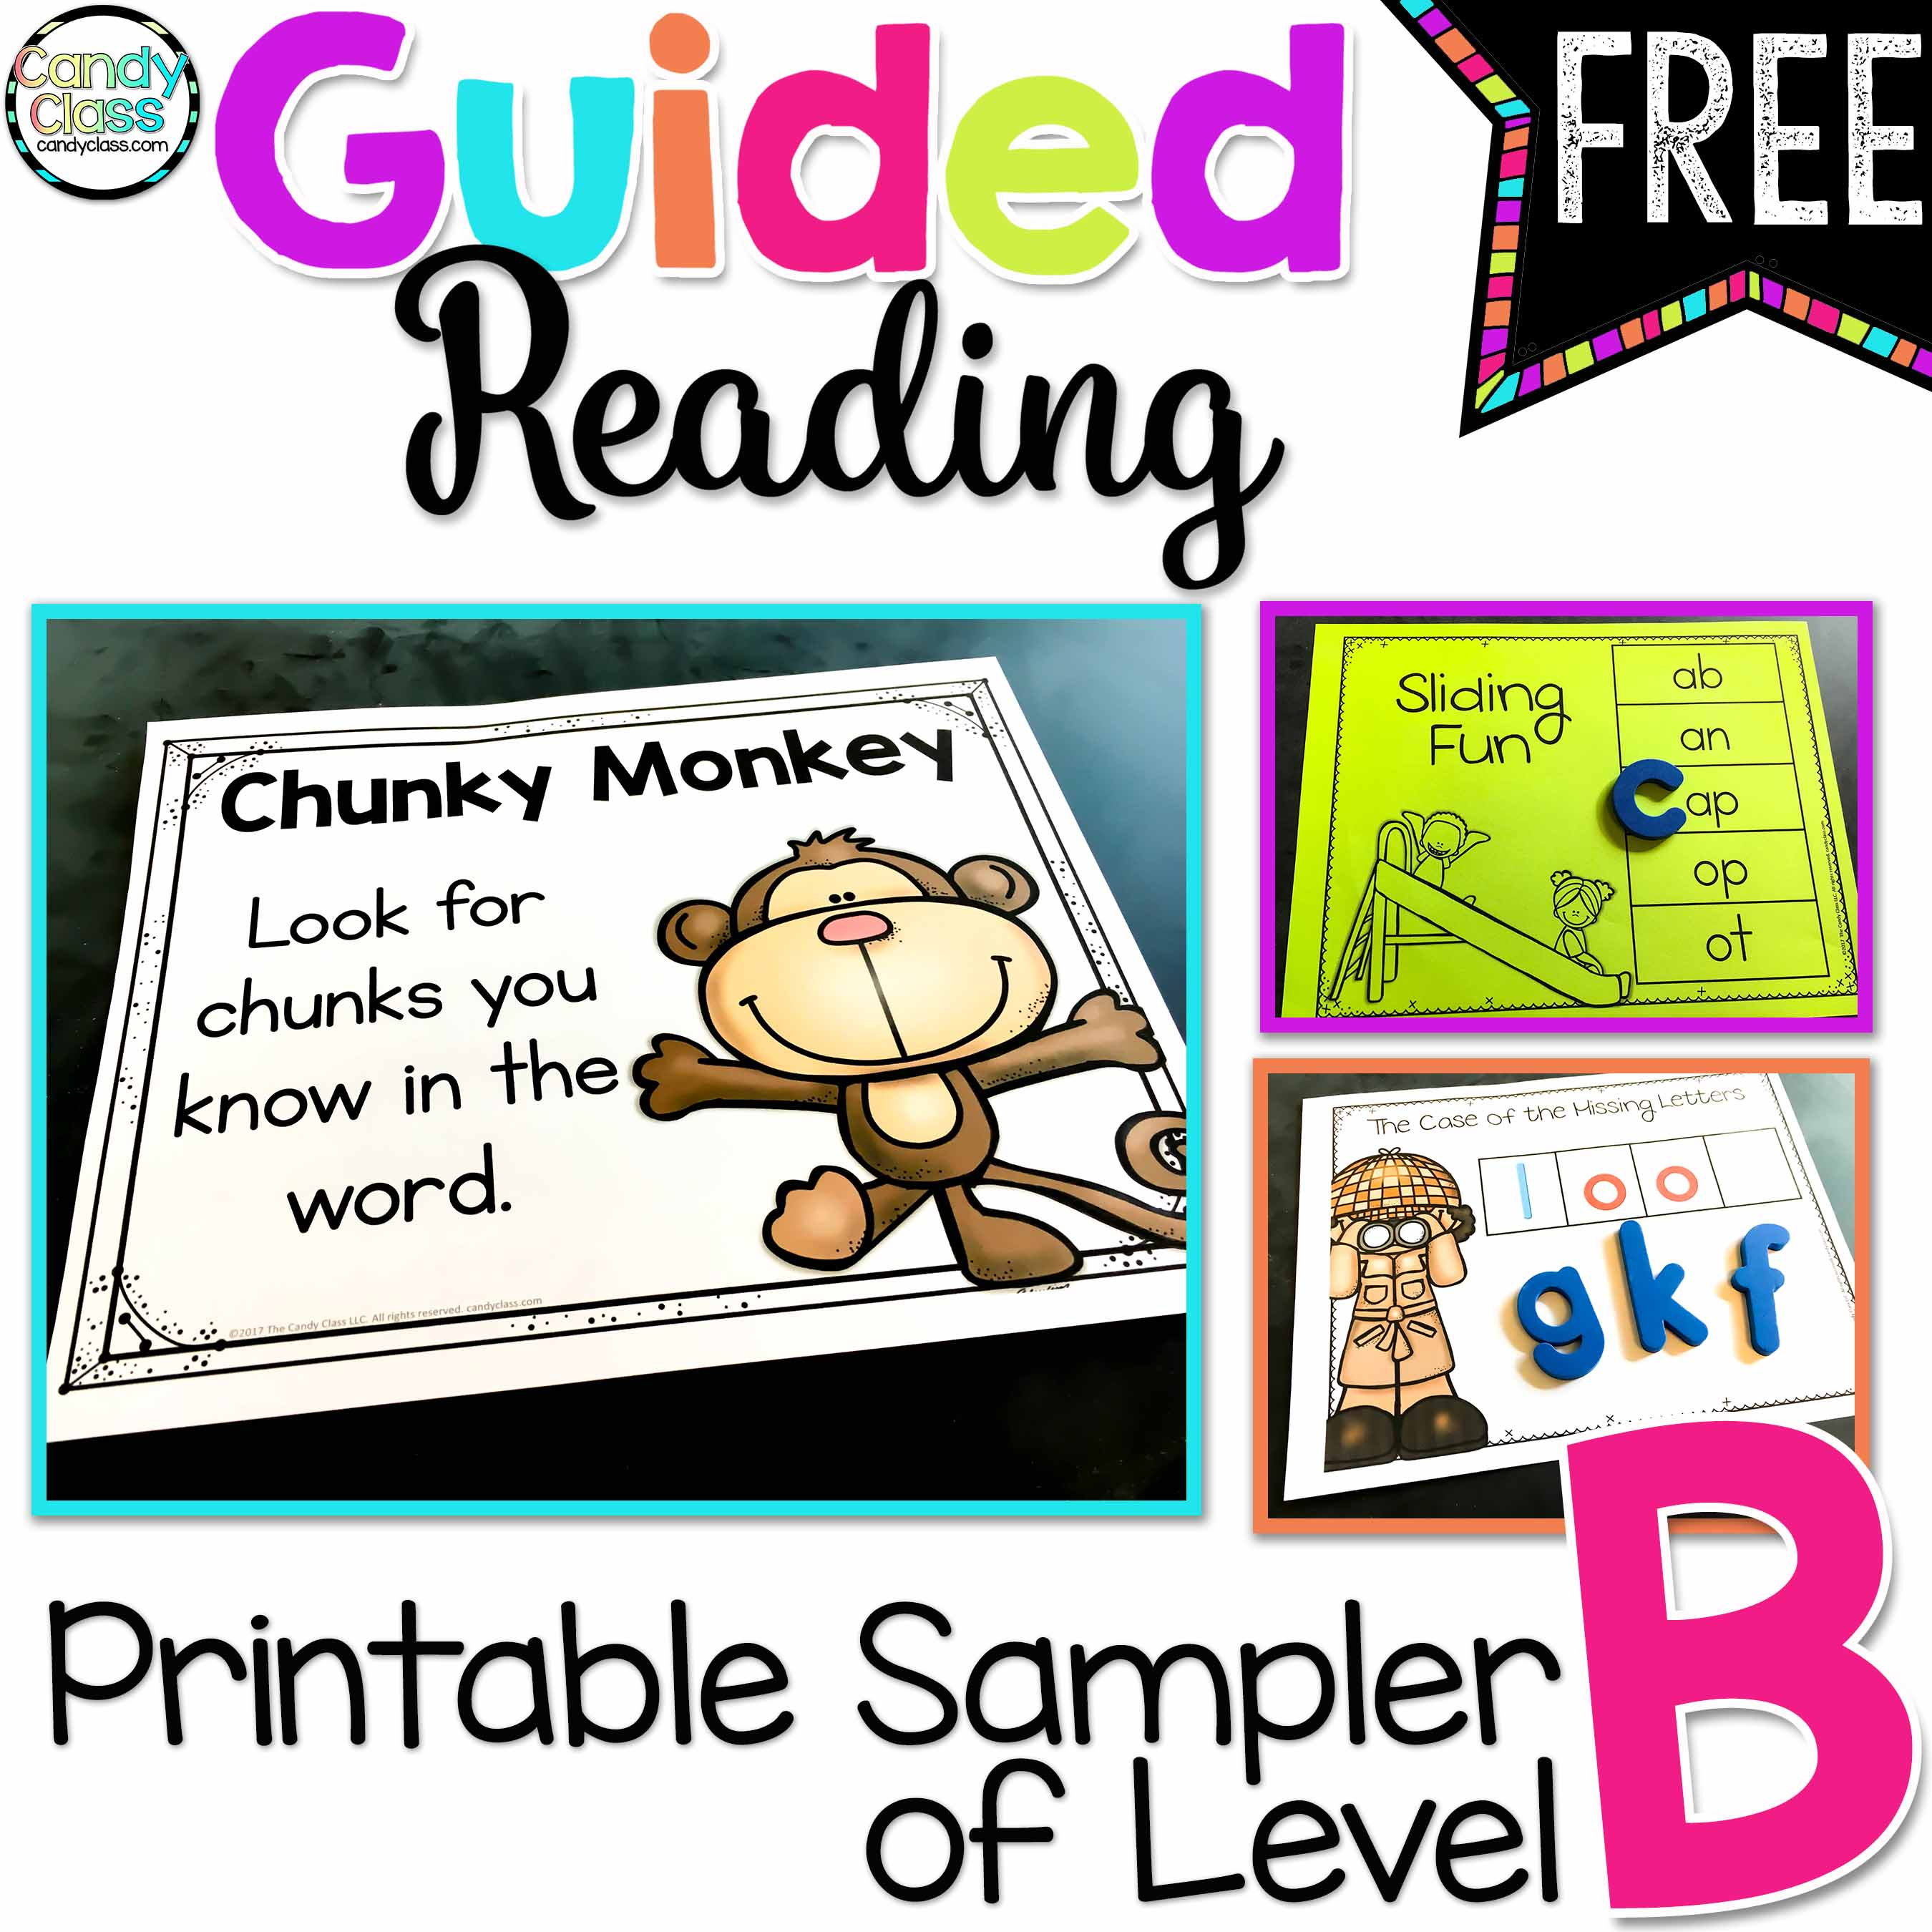 Guided Reading Level B Sampler